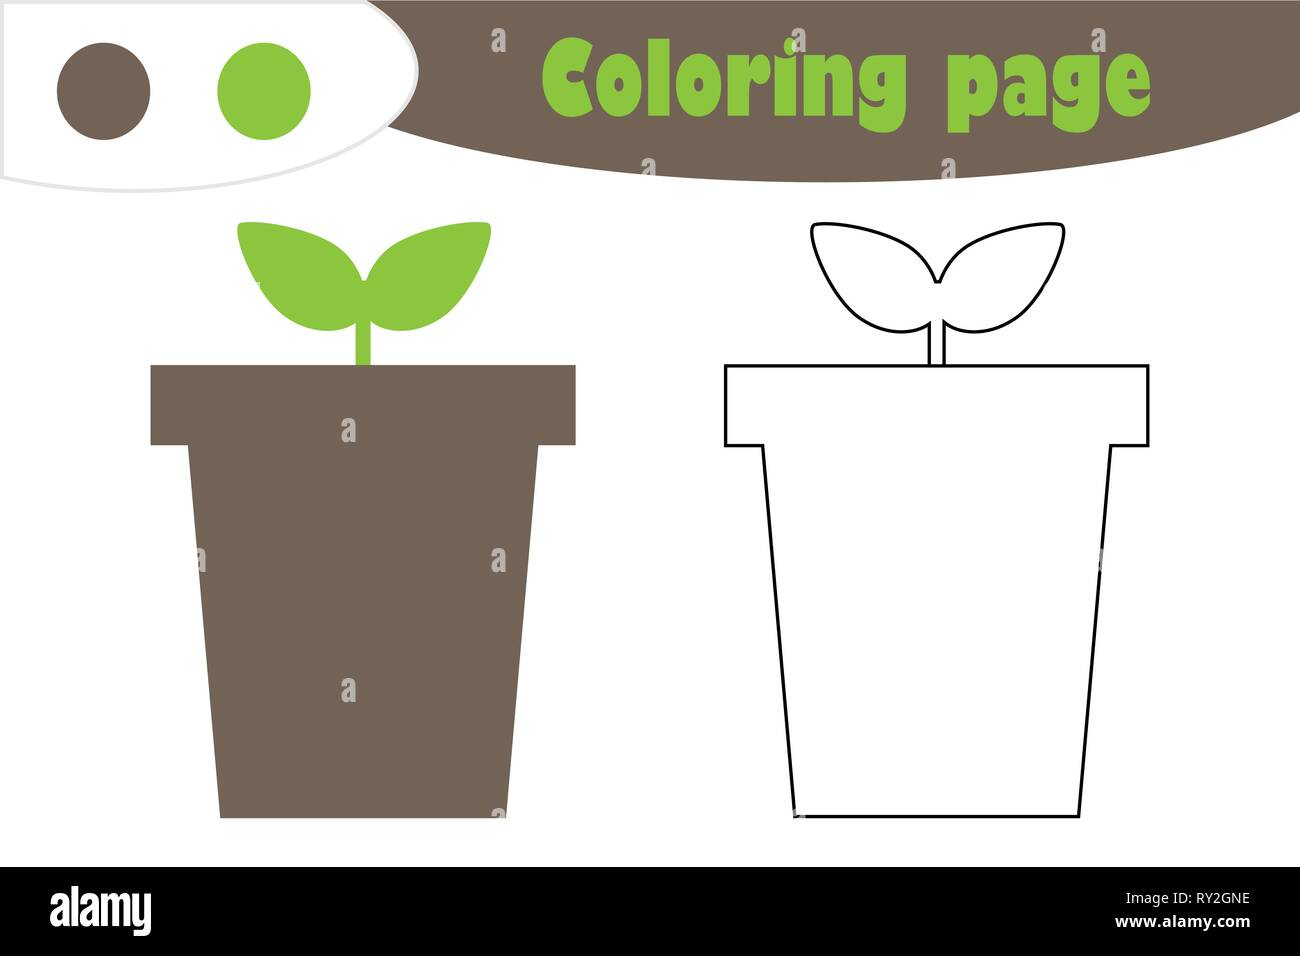 Bible Coloring Pages for Kids in 2020   Bible coloring pages ...   956x1300